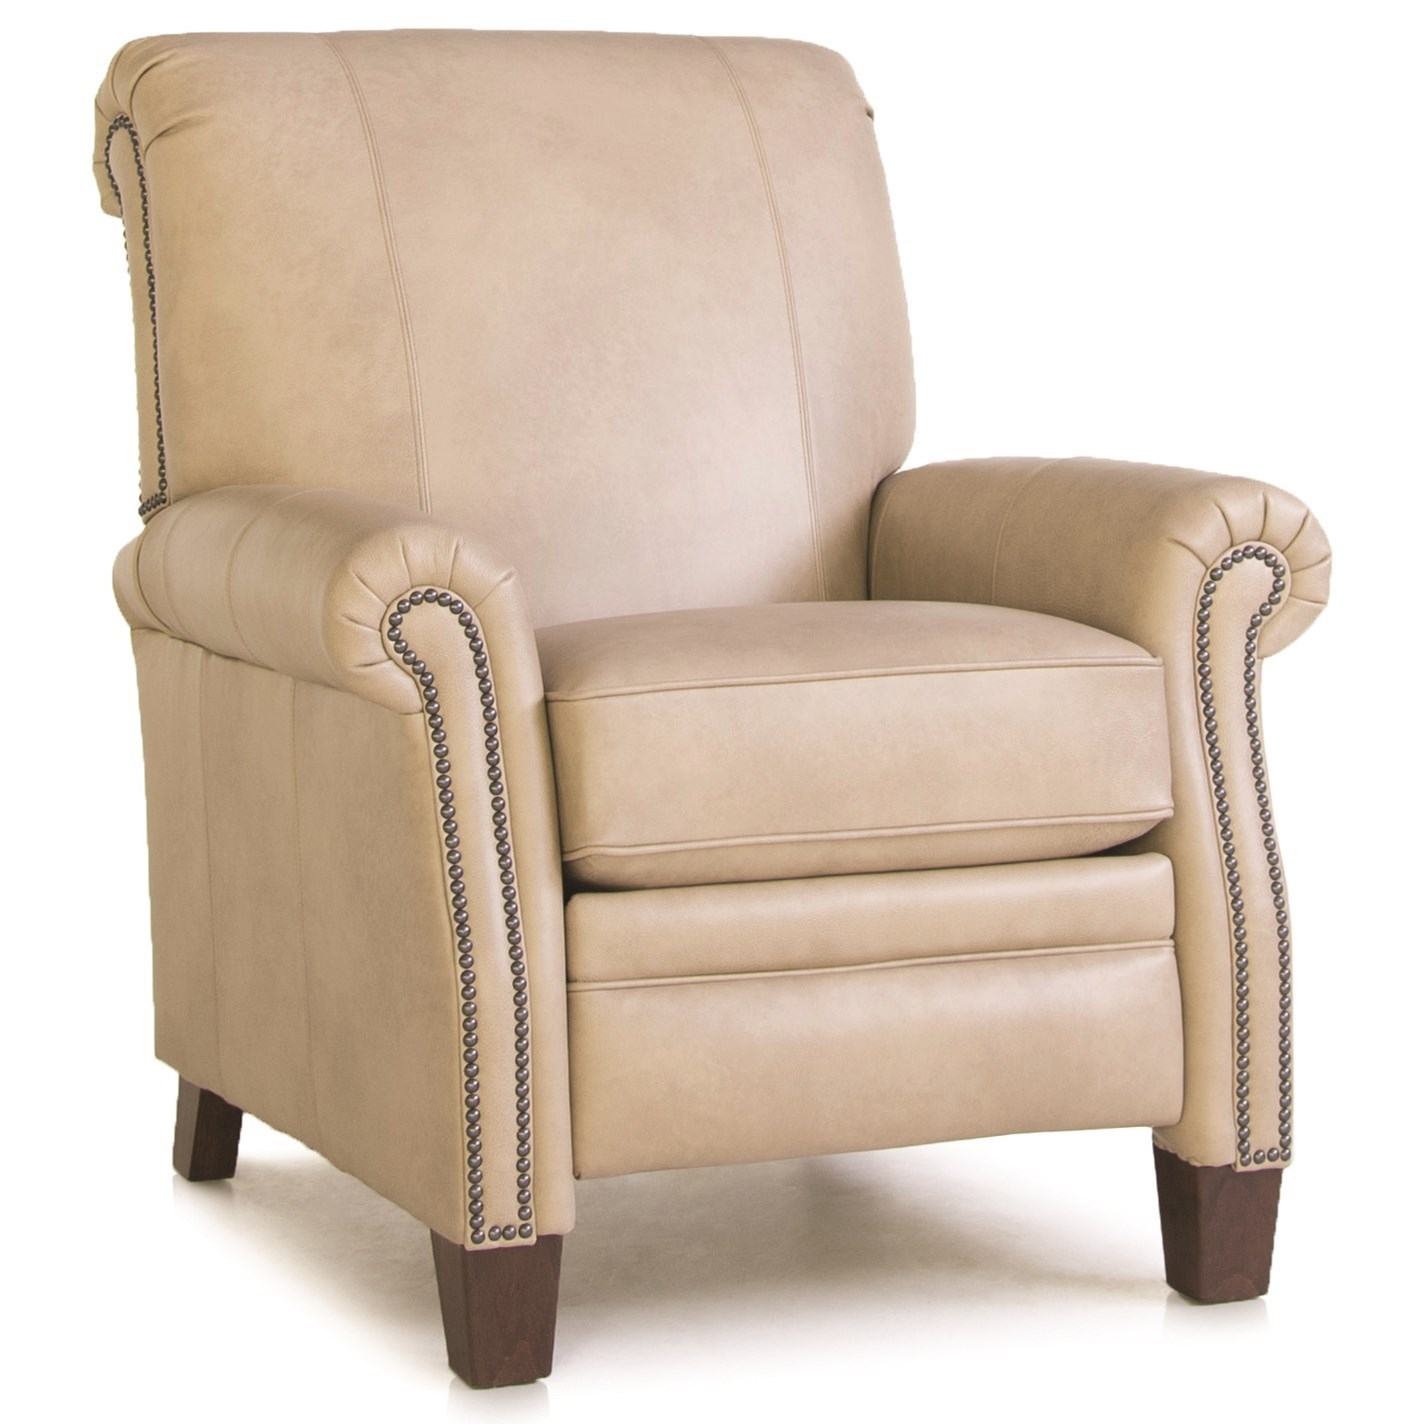 704-SB High Leg Motorized Recliner by Smith Brothers at Turk Furniture